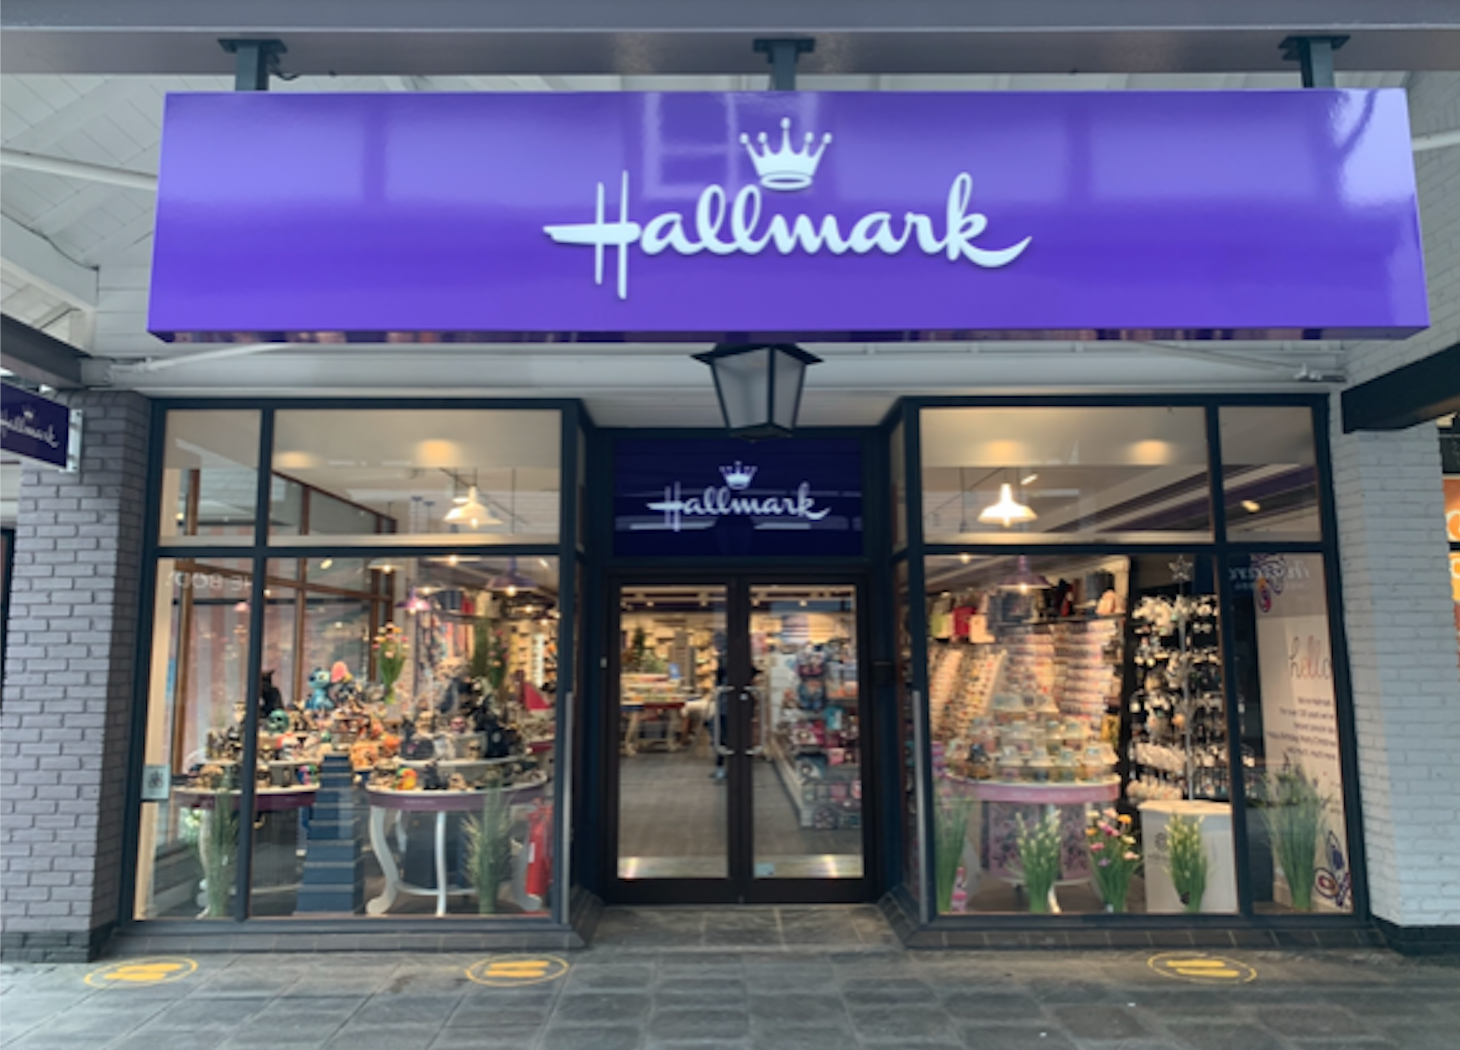 Above: The Hallmark branded shop in Cheshire Oaks is Cardzone's 23rd outlet store. It sells more than just Hallmark products.